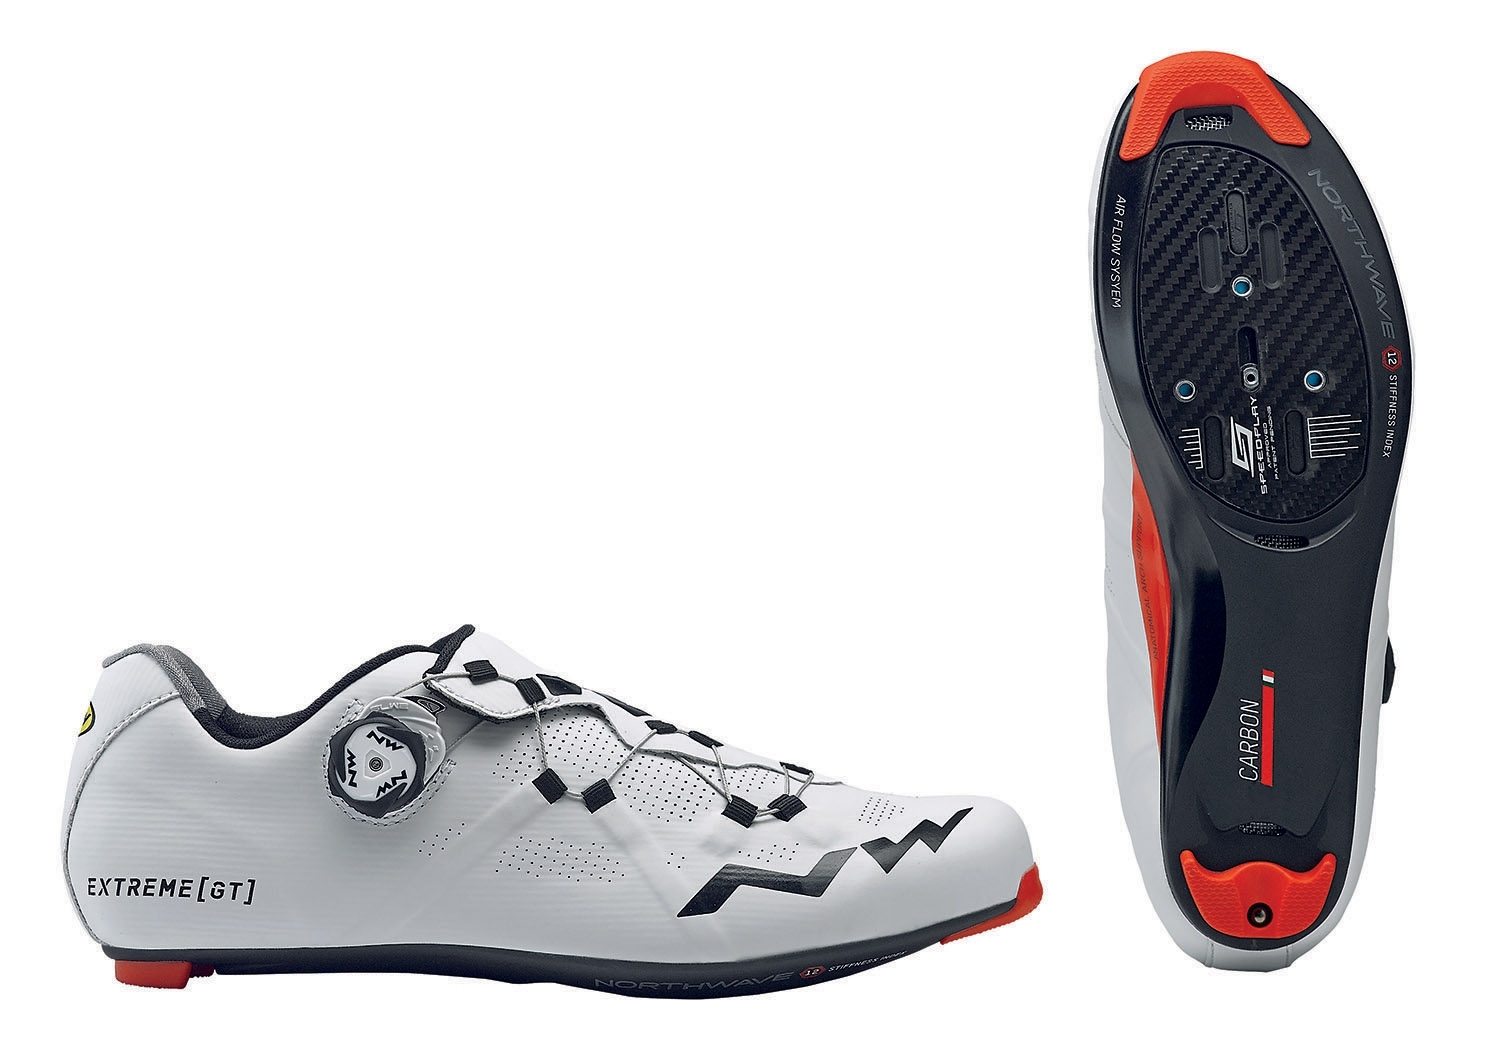 NORTHWAVE Man road cycling shoes EXTREME GT white/black